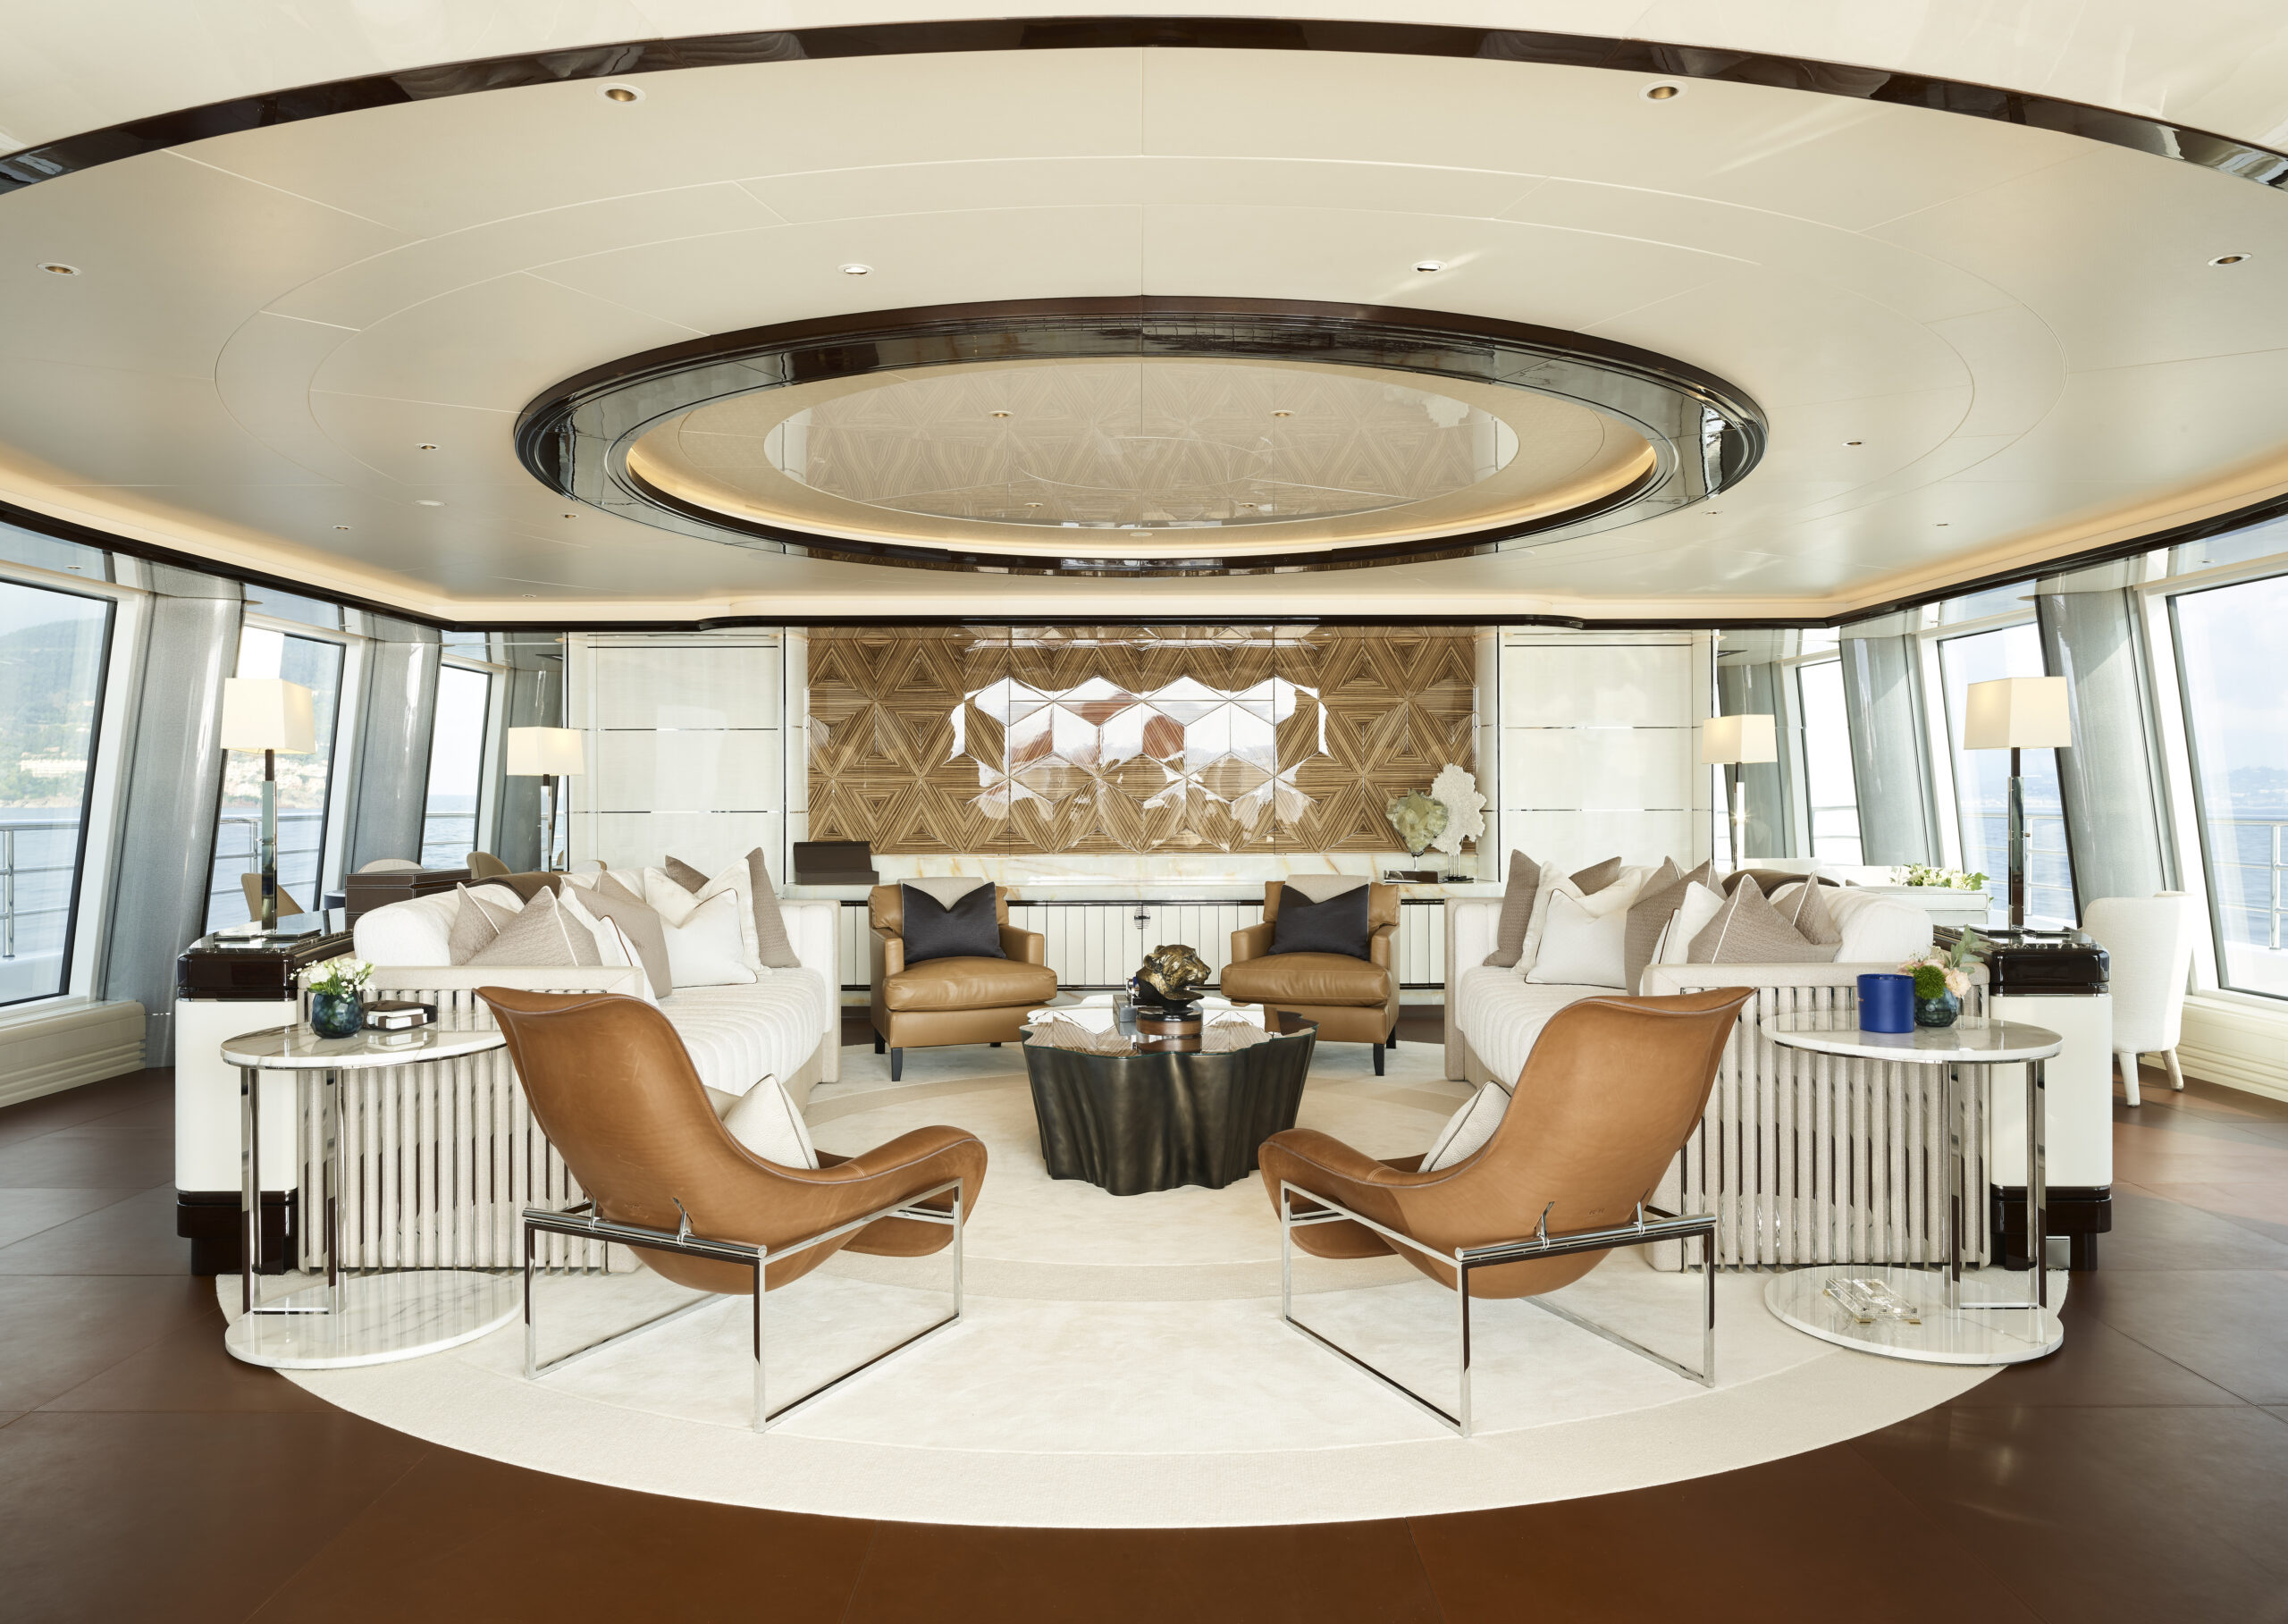 The luxurious world of Winch Design: The UHNW answer to Thomas Heatherwick